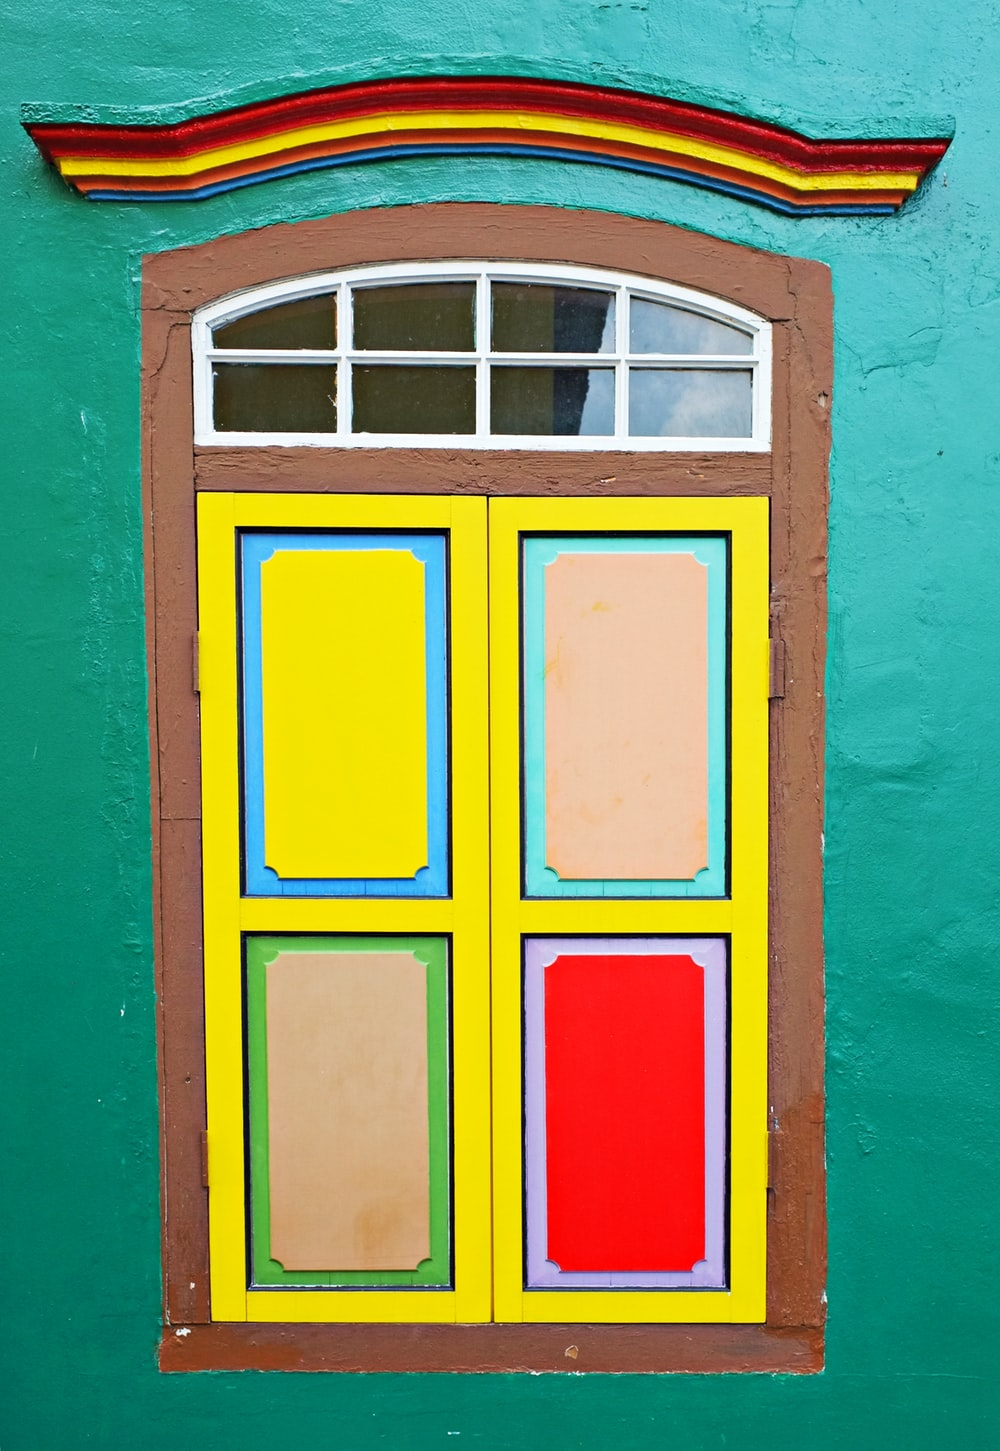 red yellow and green wooden window frame